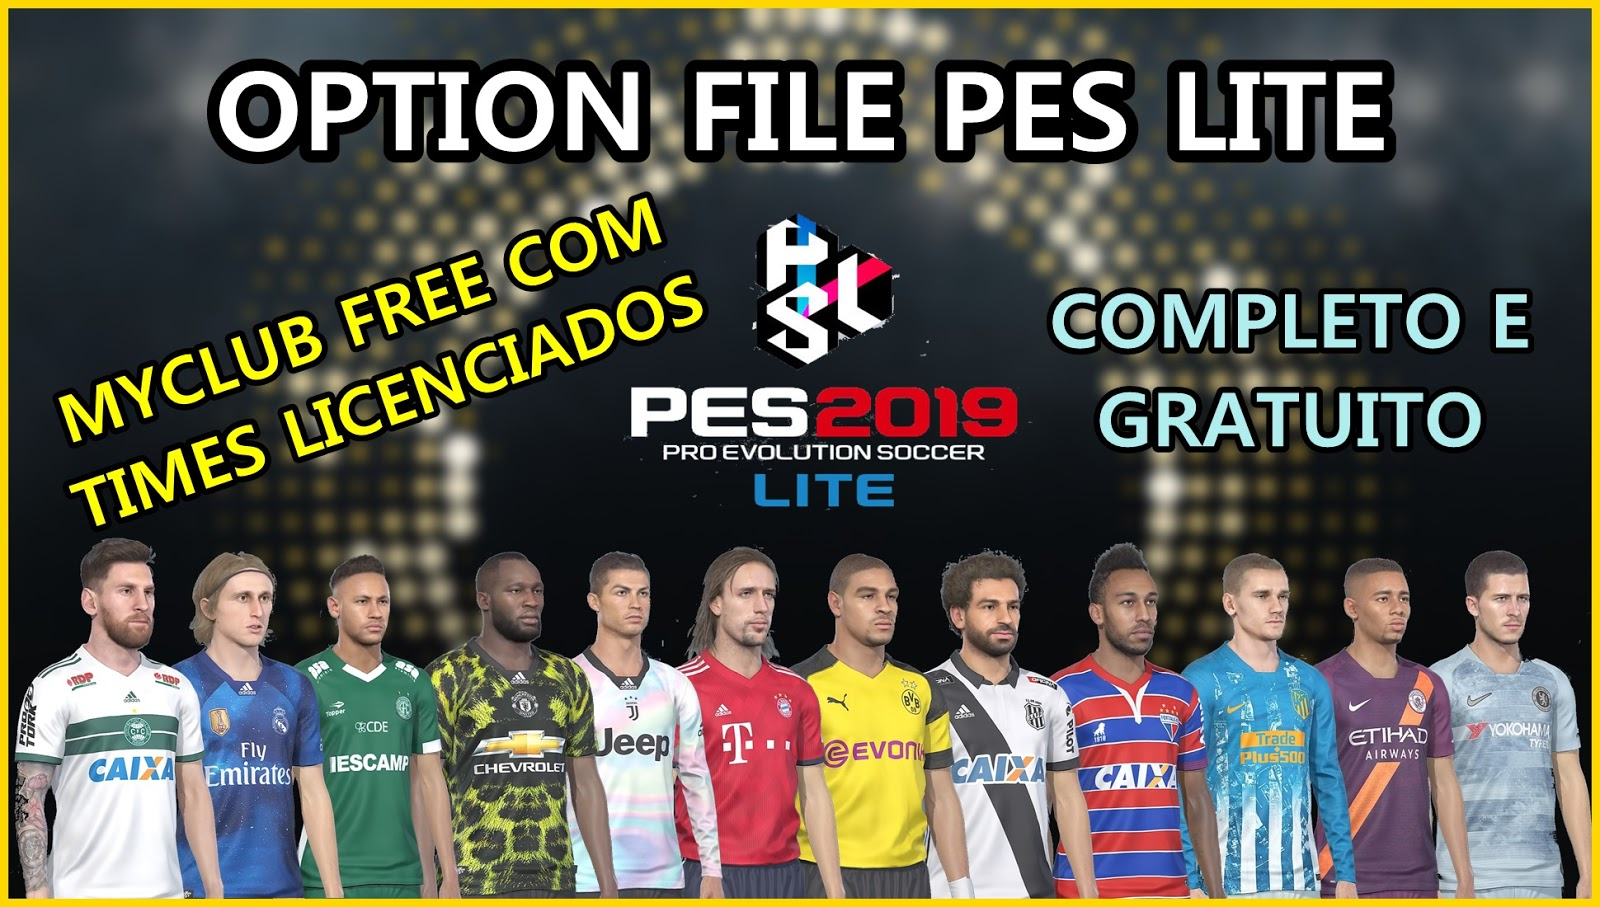 PES 2019 LITE Option File by PESVicioBR Season 2018/2019 — PES Club